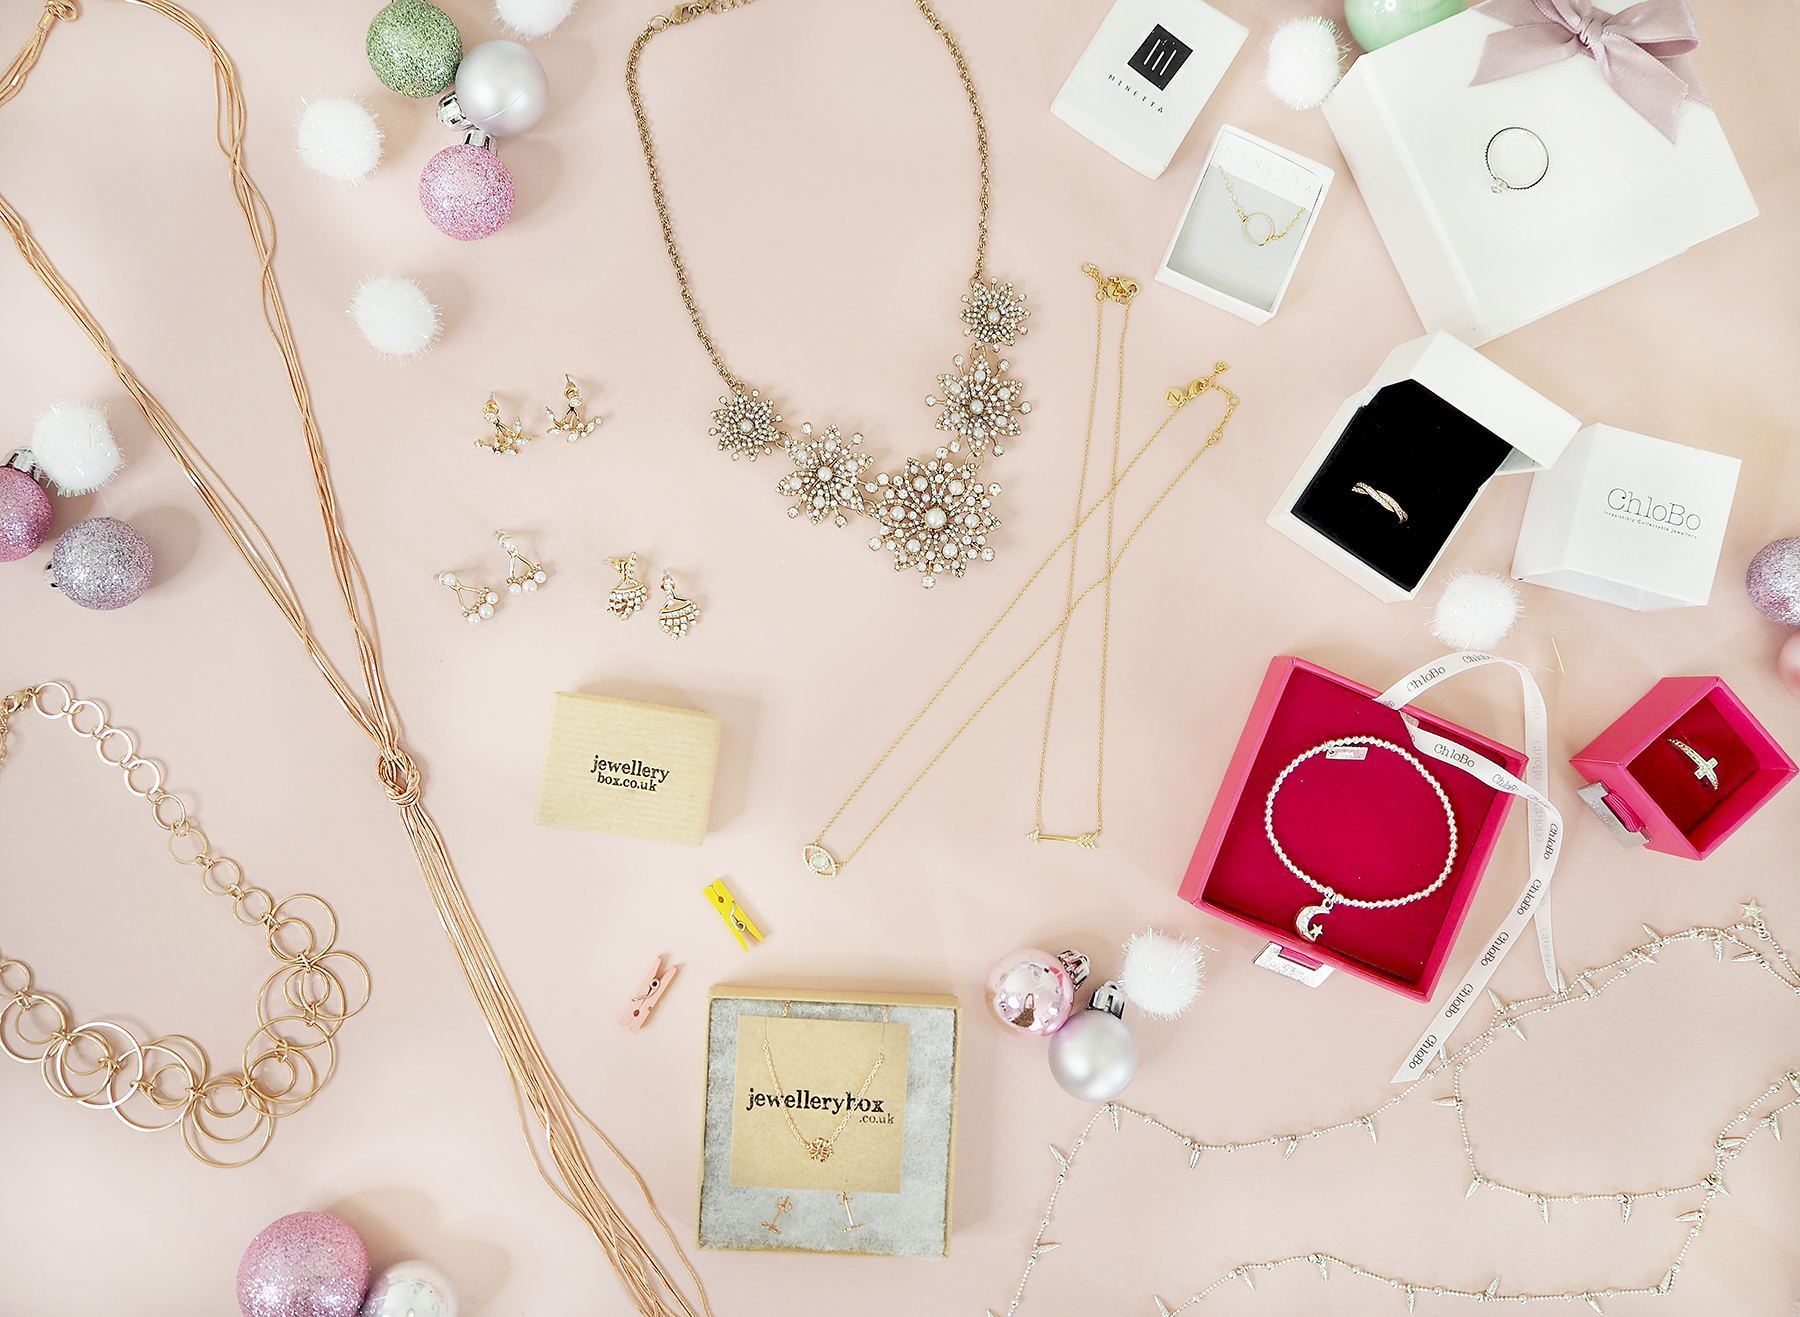 Lifestyle & Jewellery Christmas Gifts #7daysofChristmas - Bang on Style